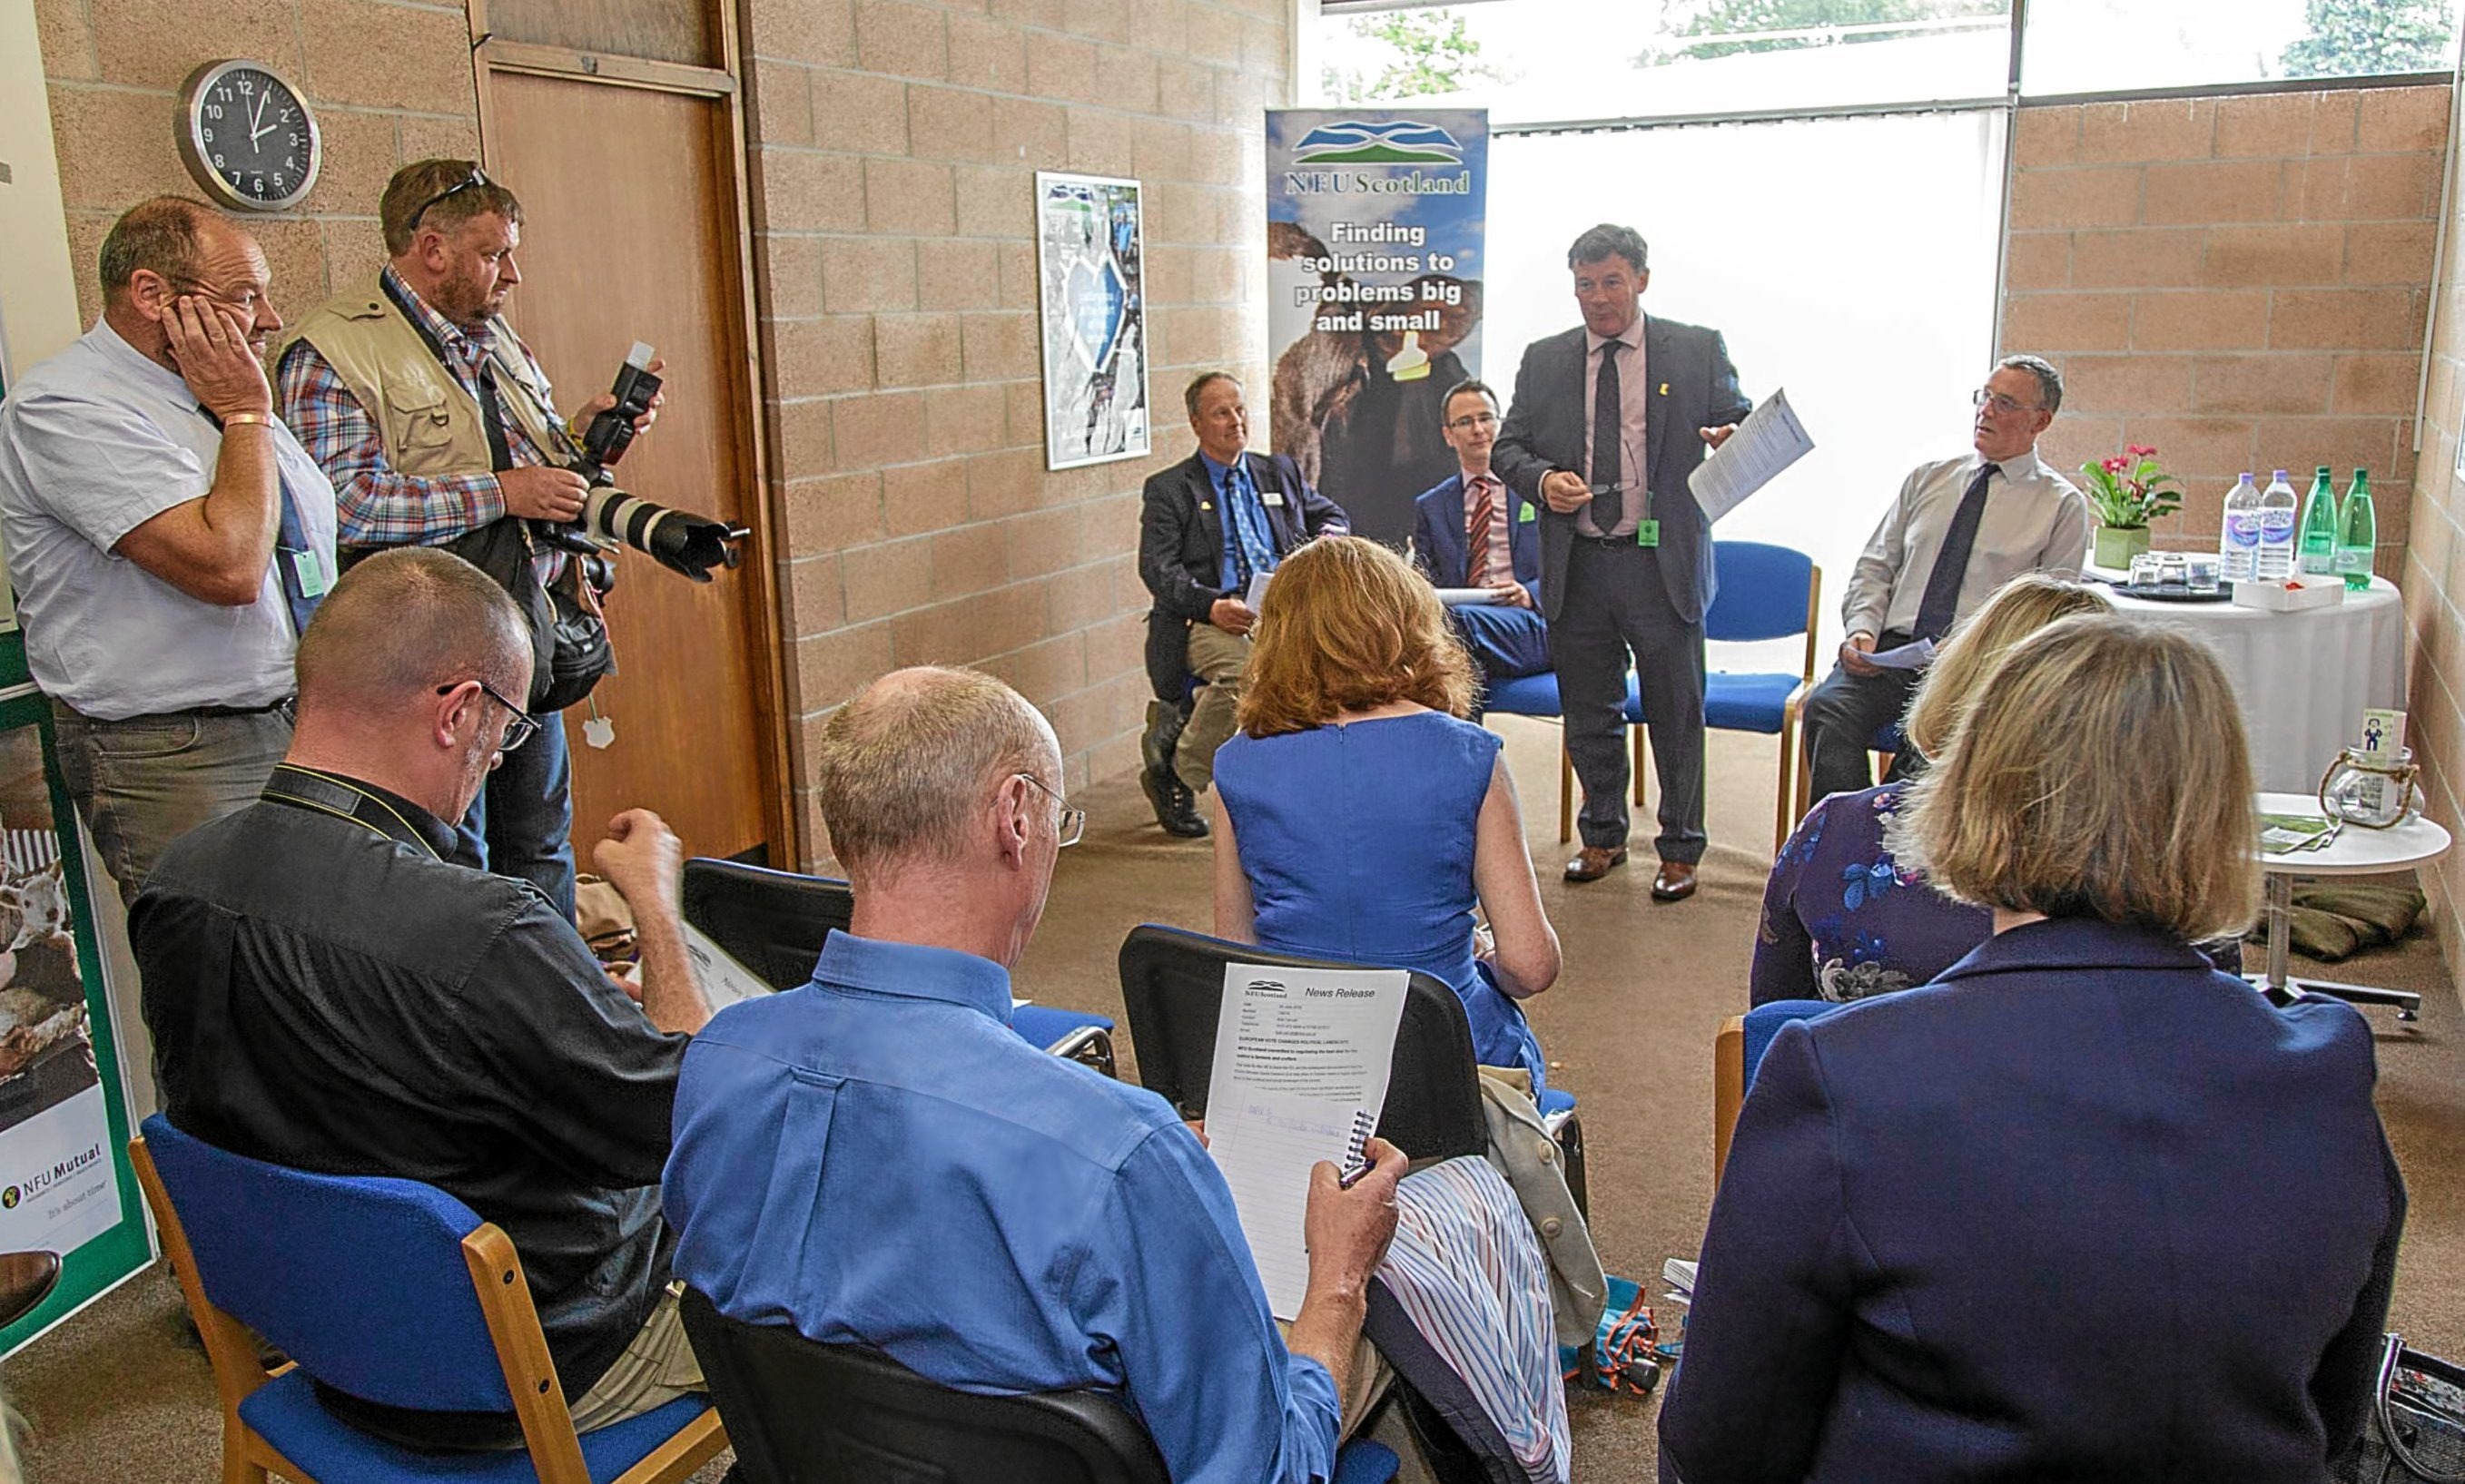 The NFUS press briefing followed the vote for Brexit.